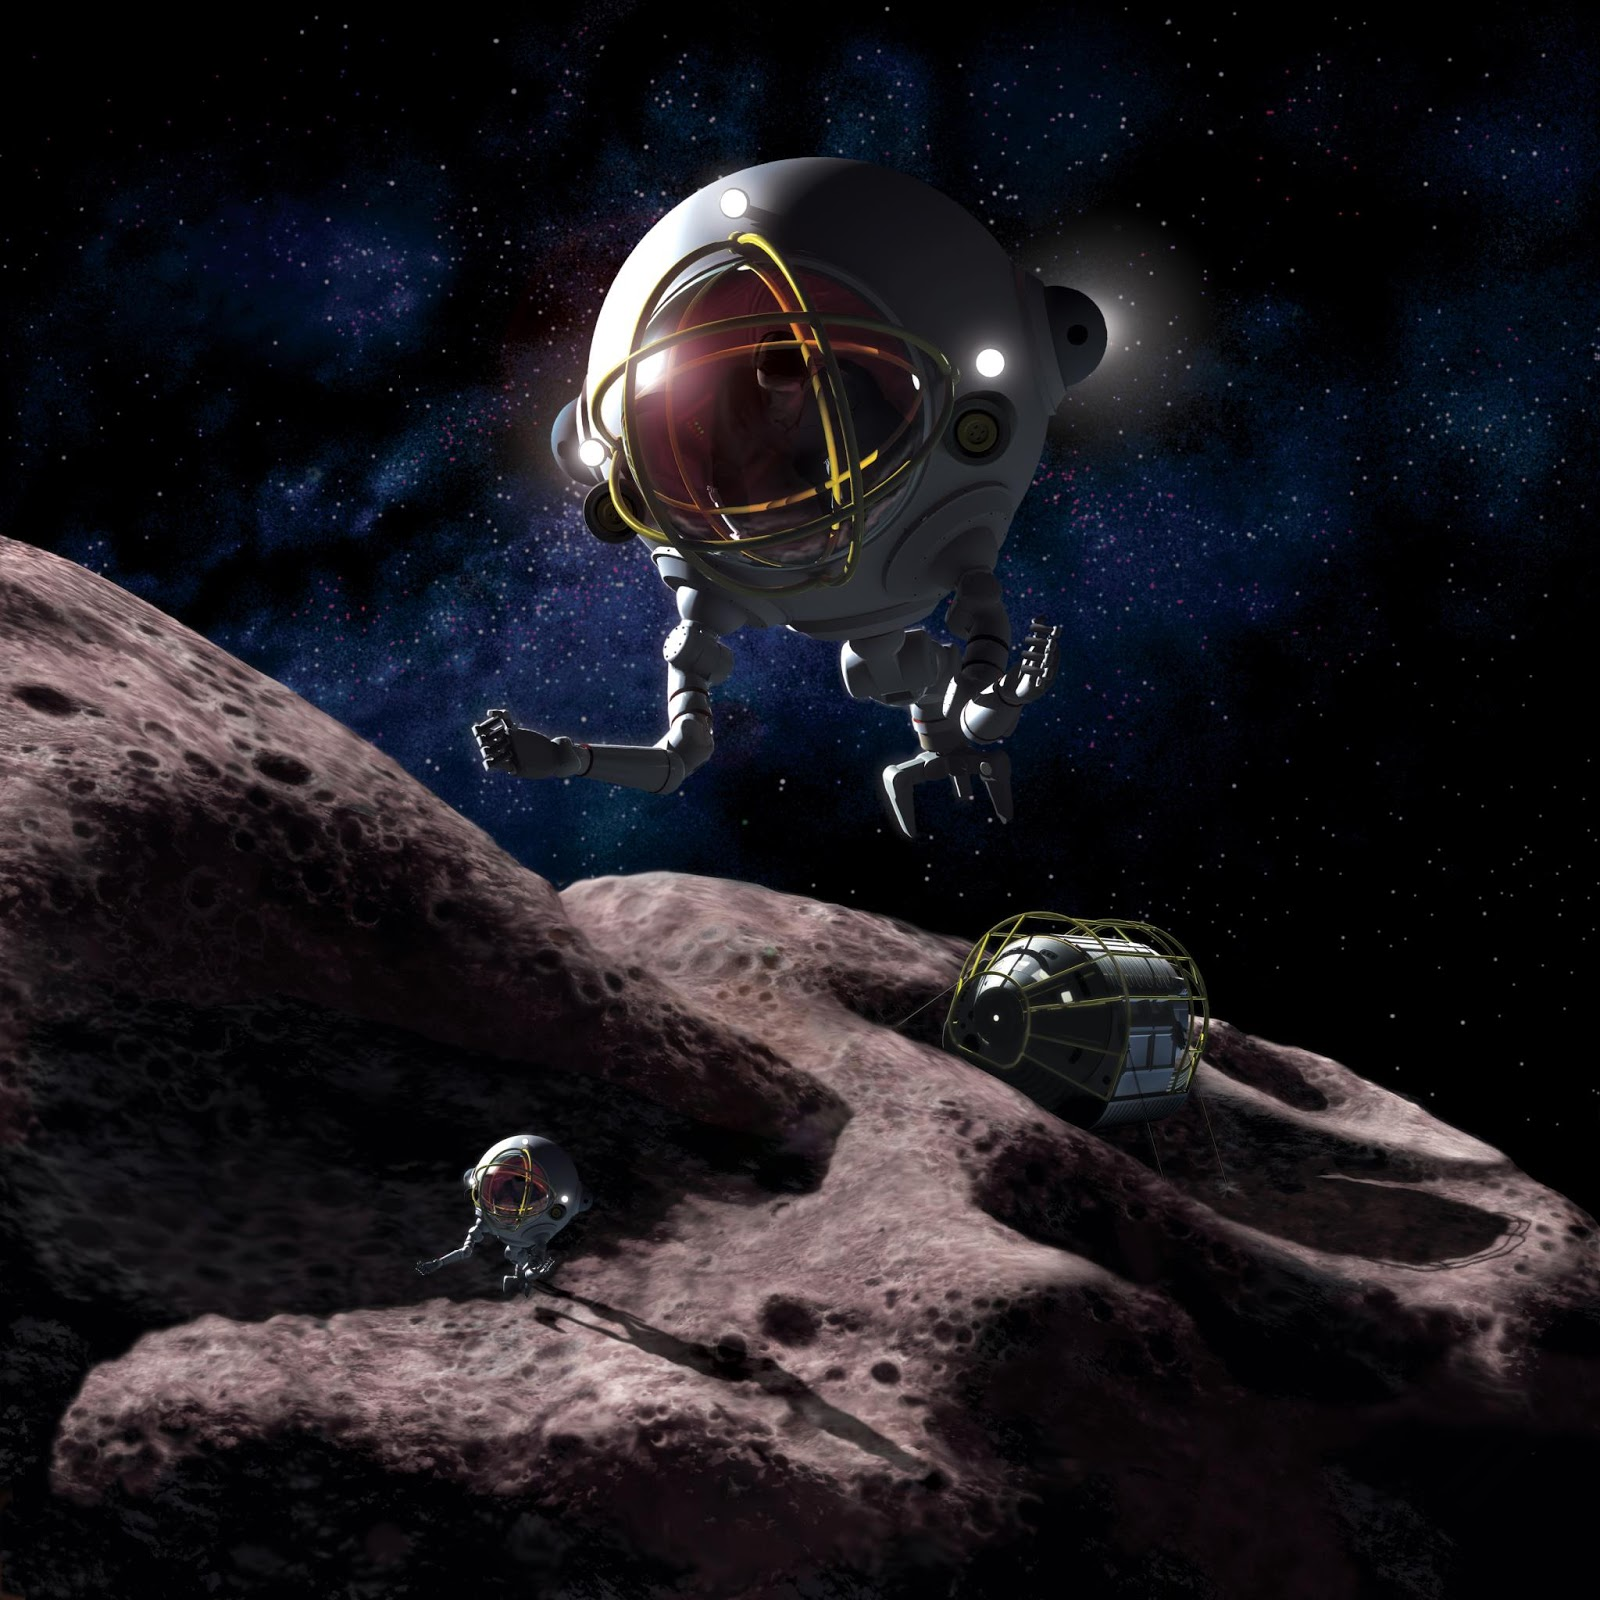 asteroid mining in space - photo #10